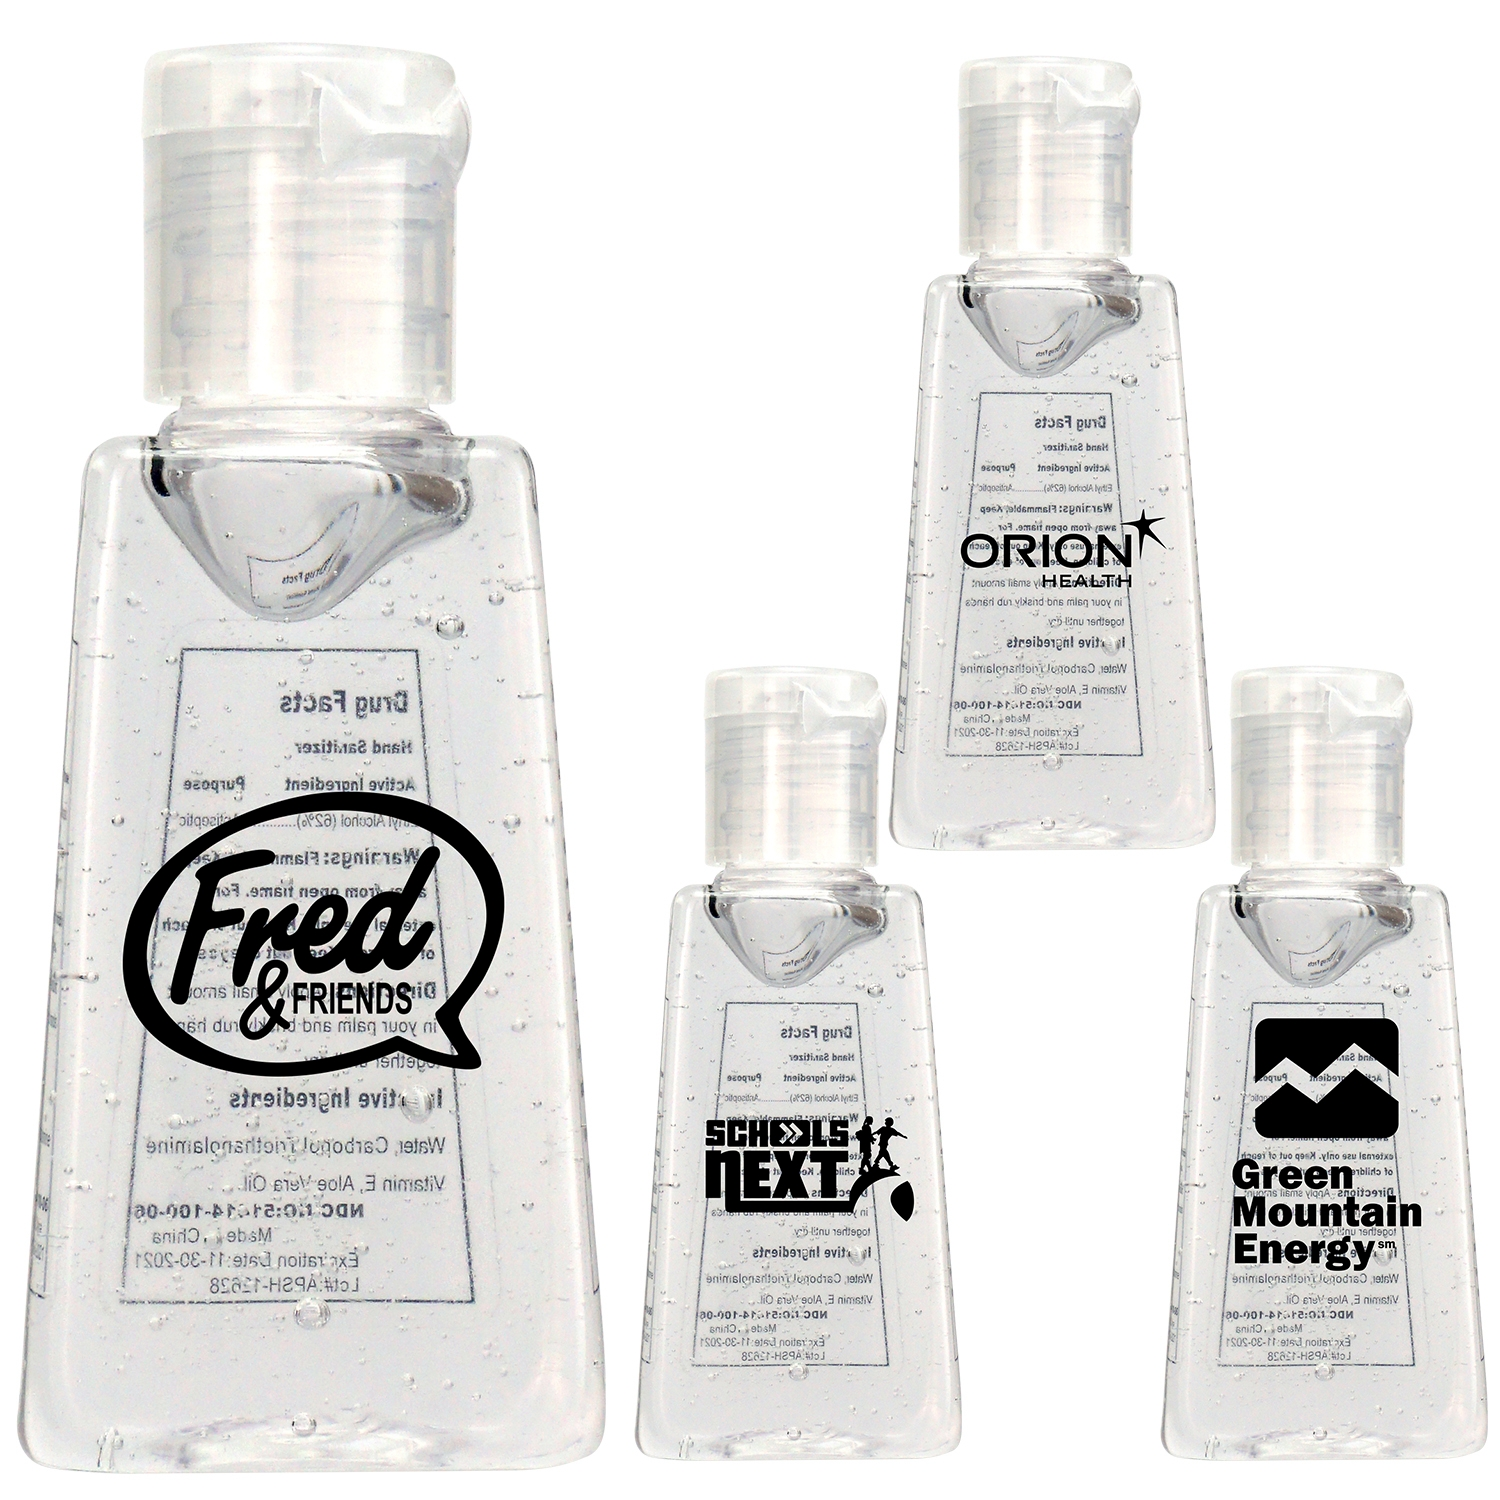 Trapezoid Hand 1 oz. Sanitizer